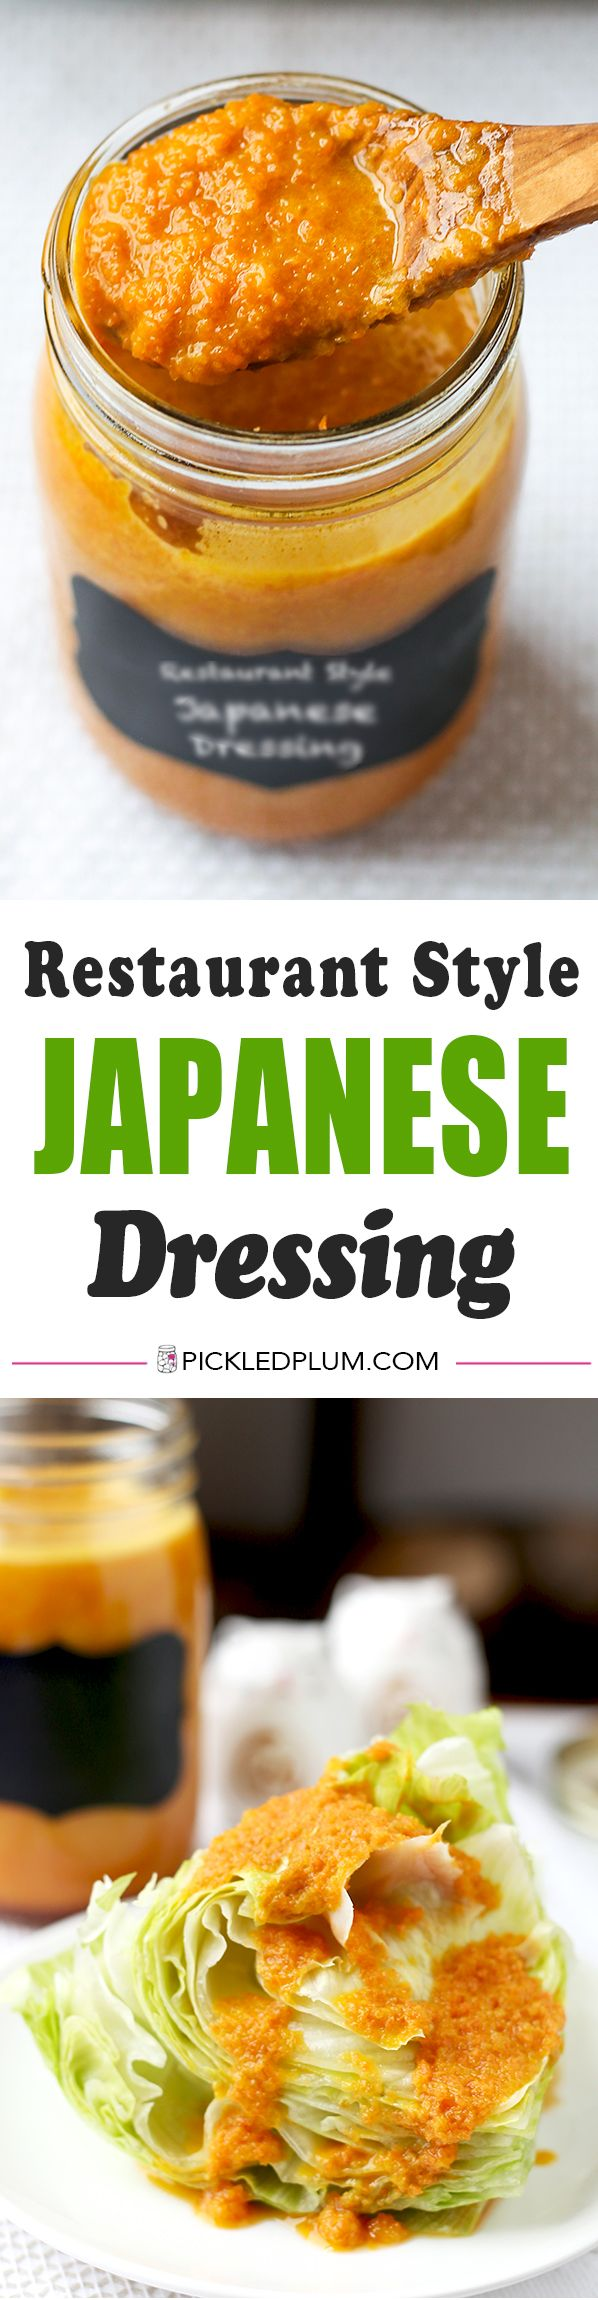 Restaurant Style Japanese Dressing - Make this iconic and delicious Japanese Restaurant Style Ginger Dressing Recipe inless than 10 minutes! Japanese food recipes | homemade salad dressing recipes | ginger carrot dressing | Japanese cuisine | pickledplum.com